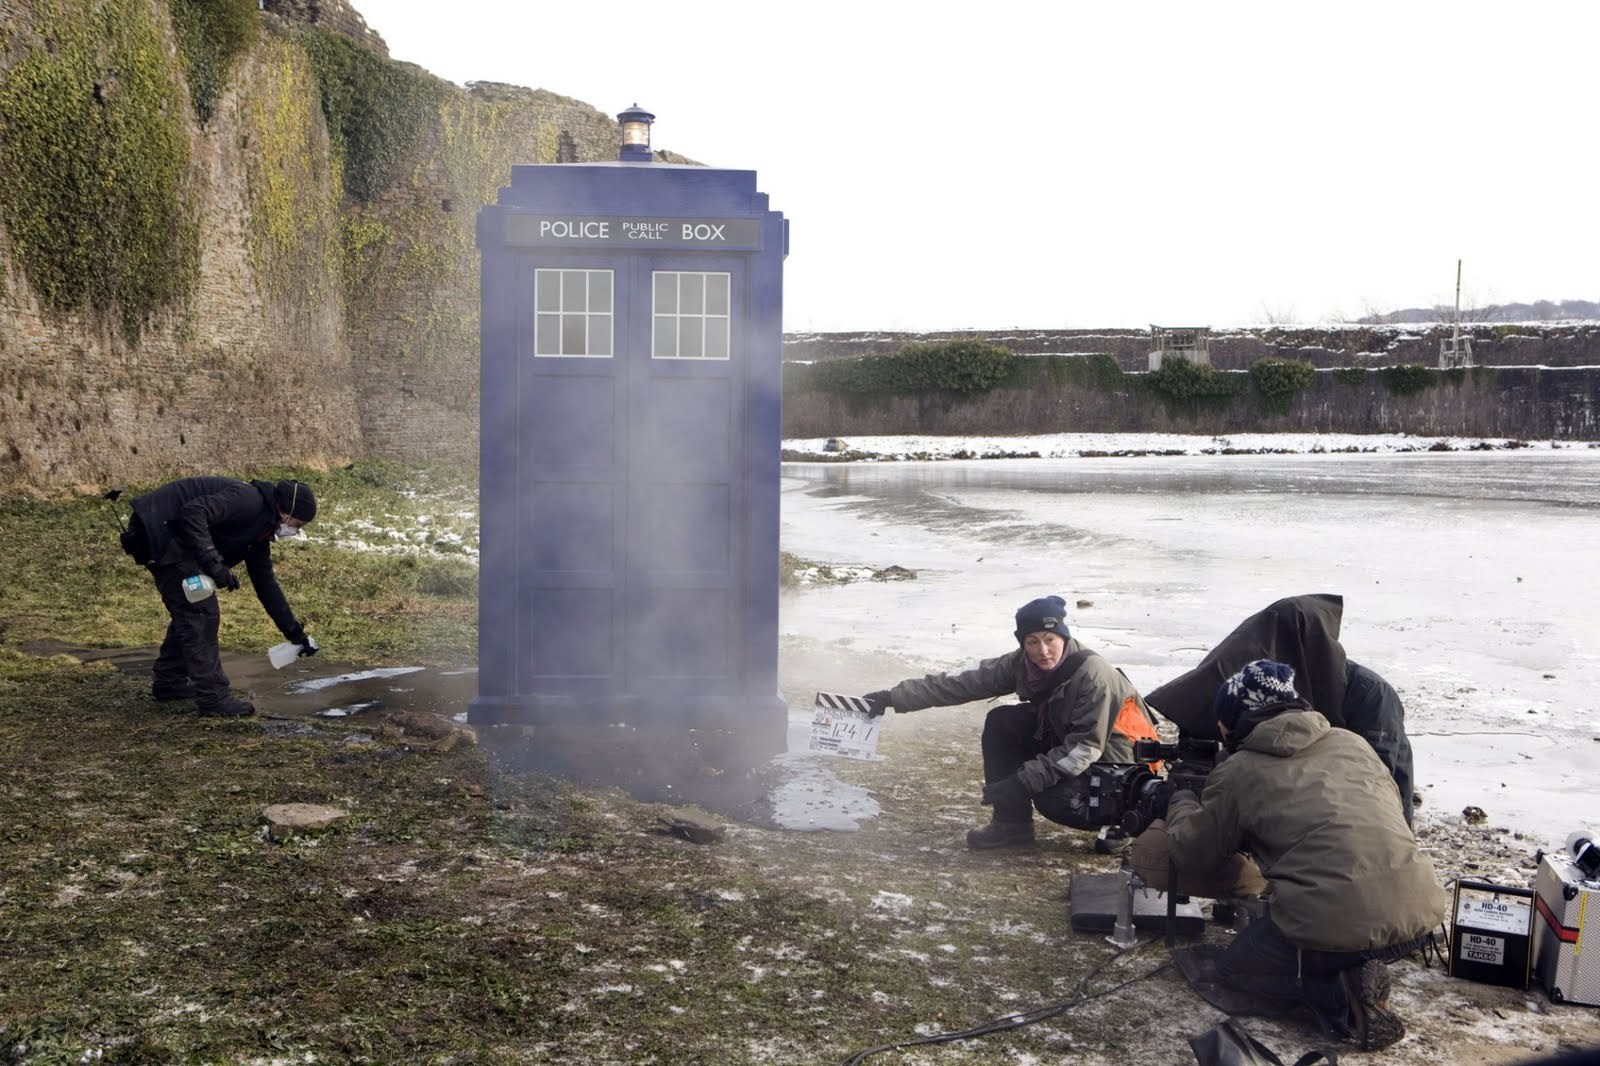 Doctor Who Behind the Scenes Photos & Tech Specs